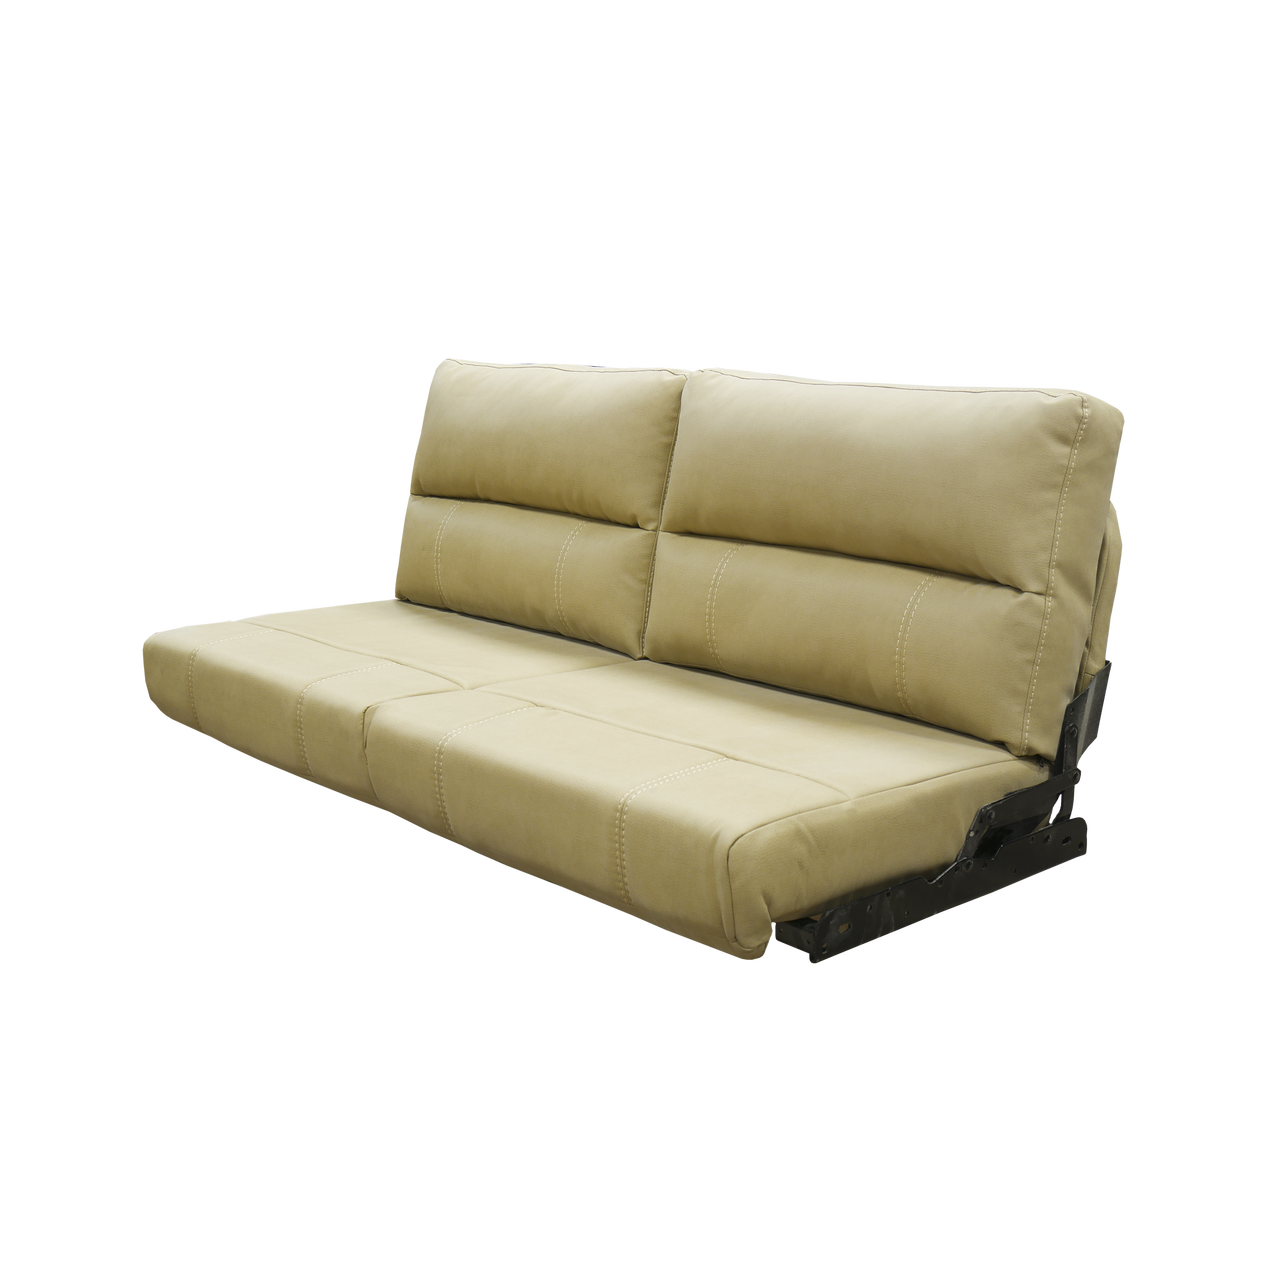 59 Rv Flip Sofa Sleeper